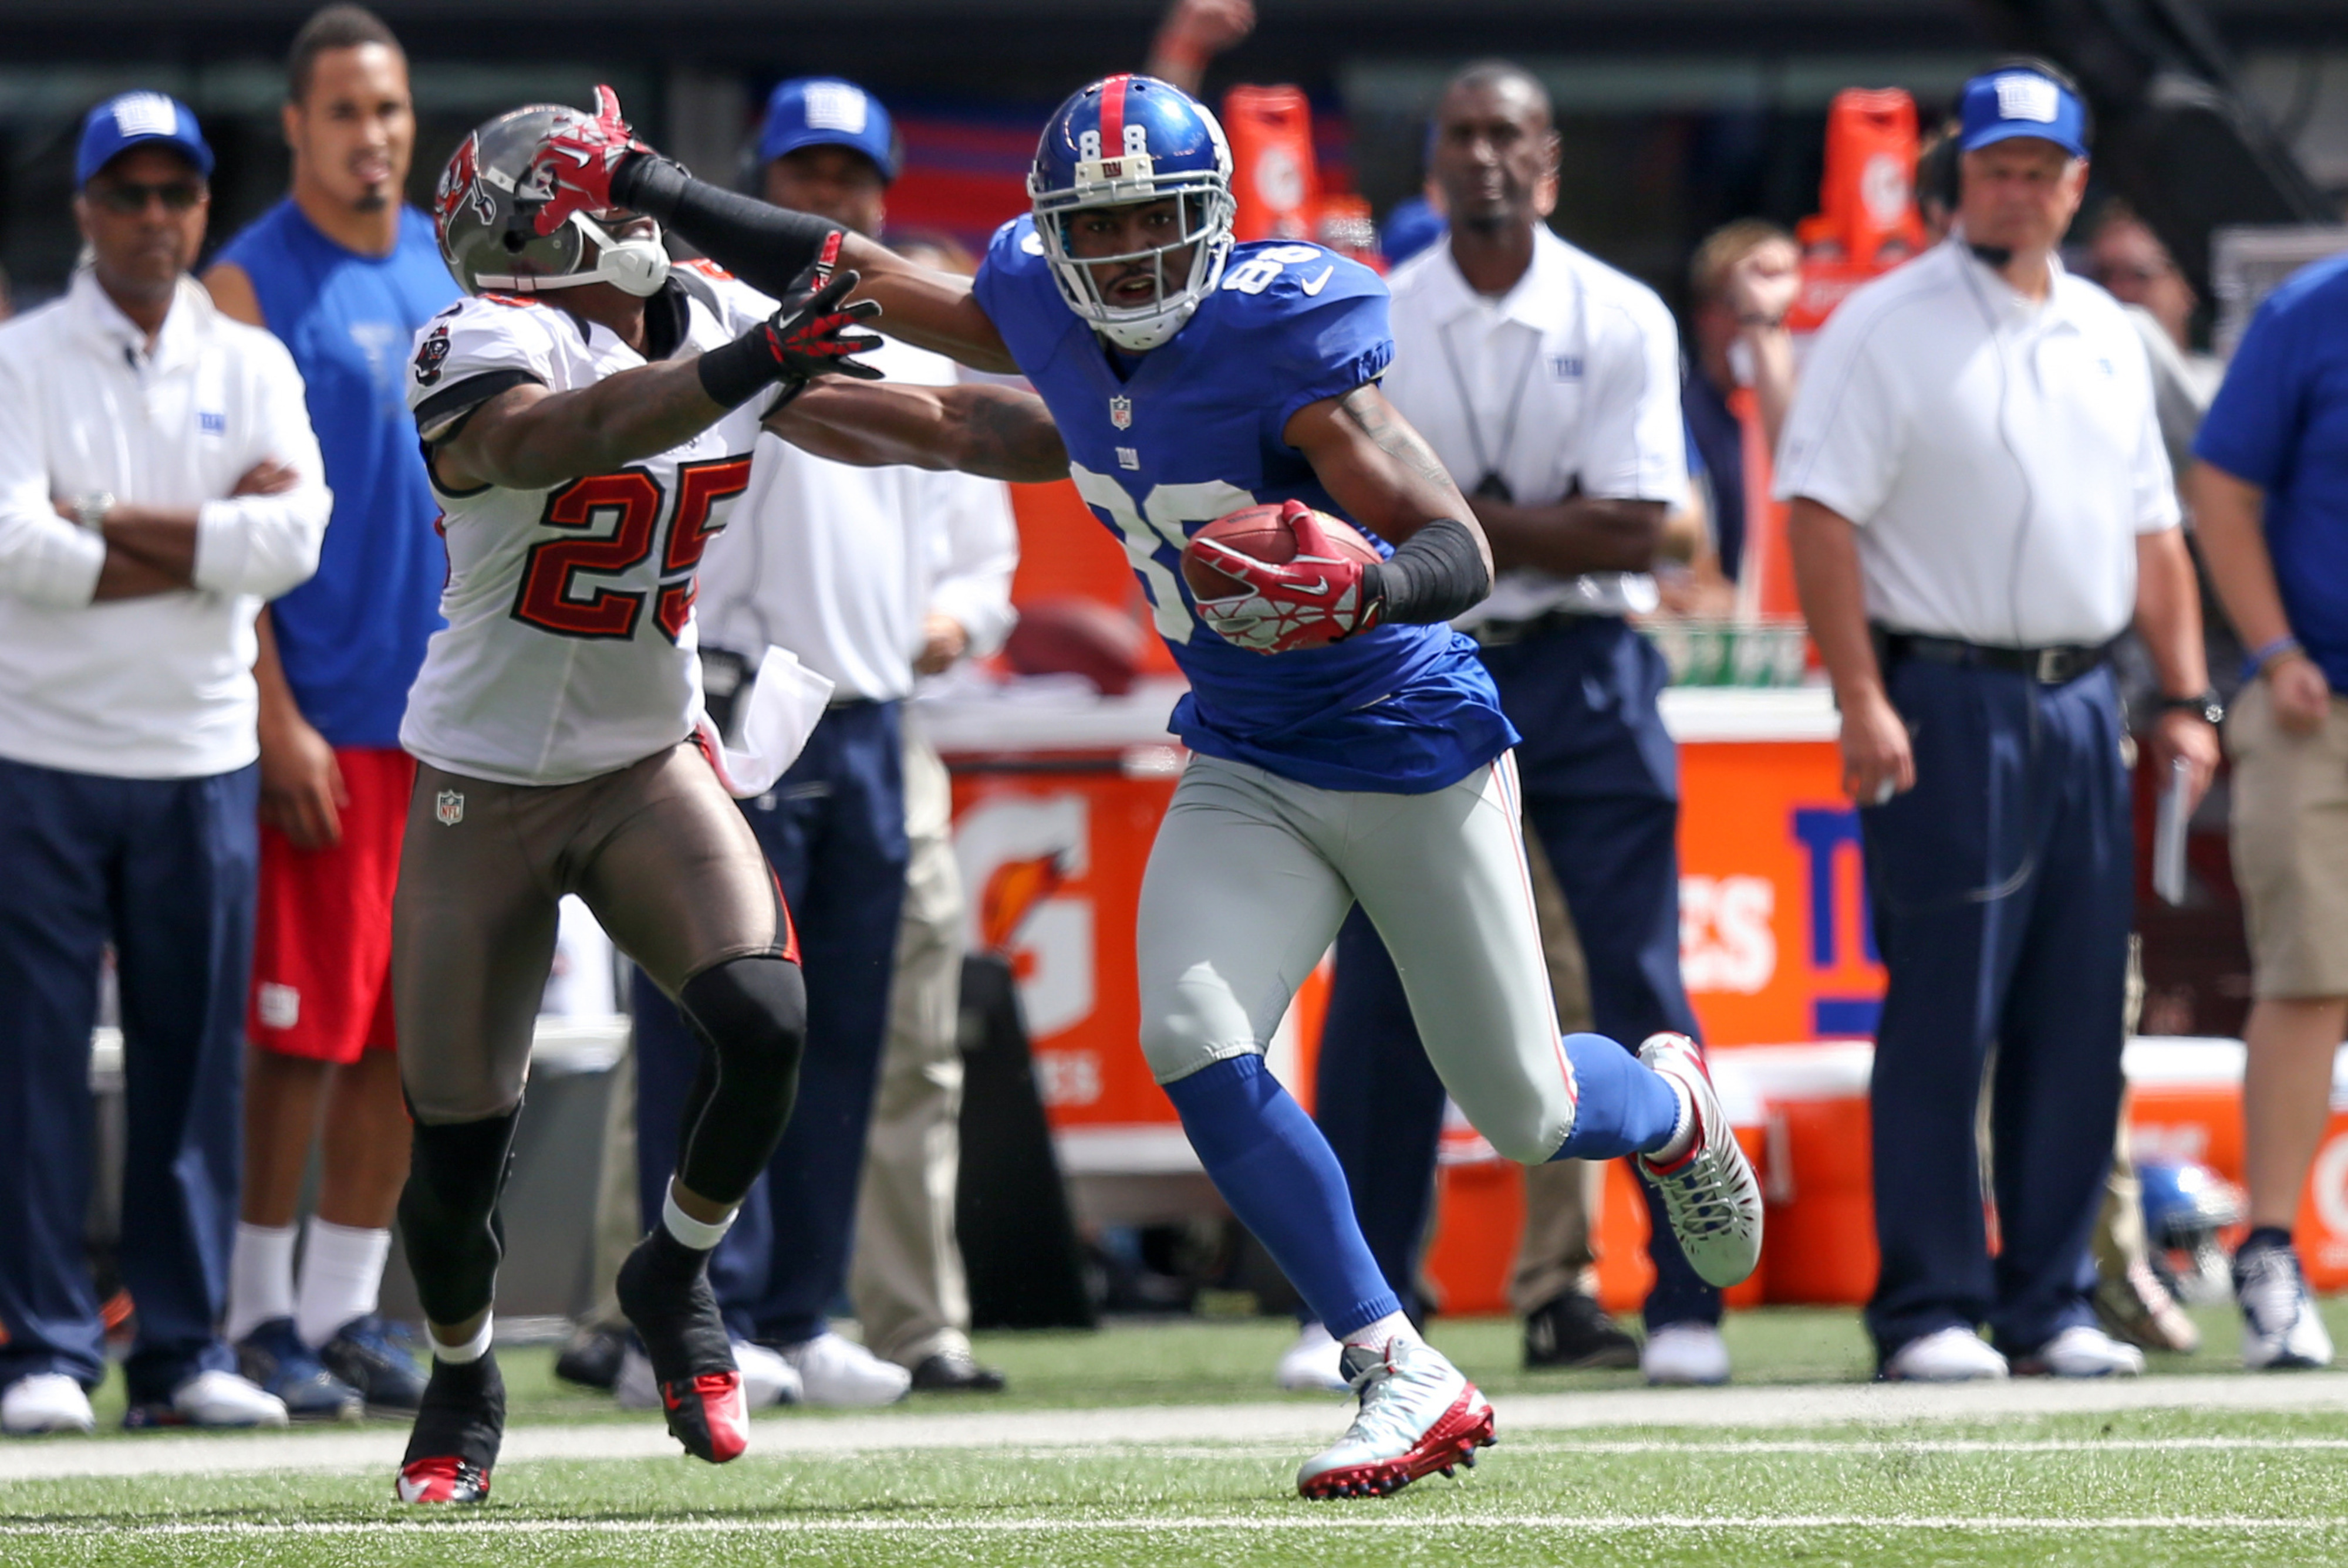 Sep 16, 2012; East Rutherford, NJ, New York Giants wide receiver Hakeem Nicks (88) holds off Tampa Bay Buccaneers cornerback Aqib Talib (25) during the first quarter at MetLife Stadium. Mandatory Credit: Anthony Gruppuso-US PRESSWIRE